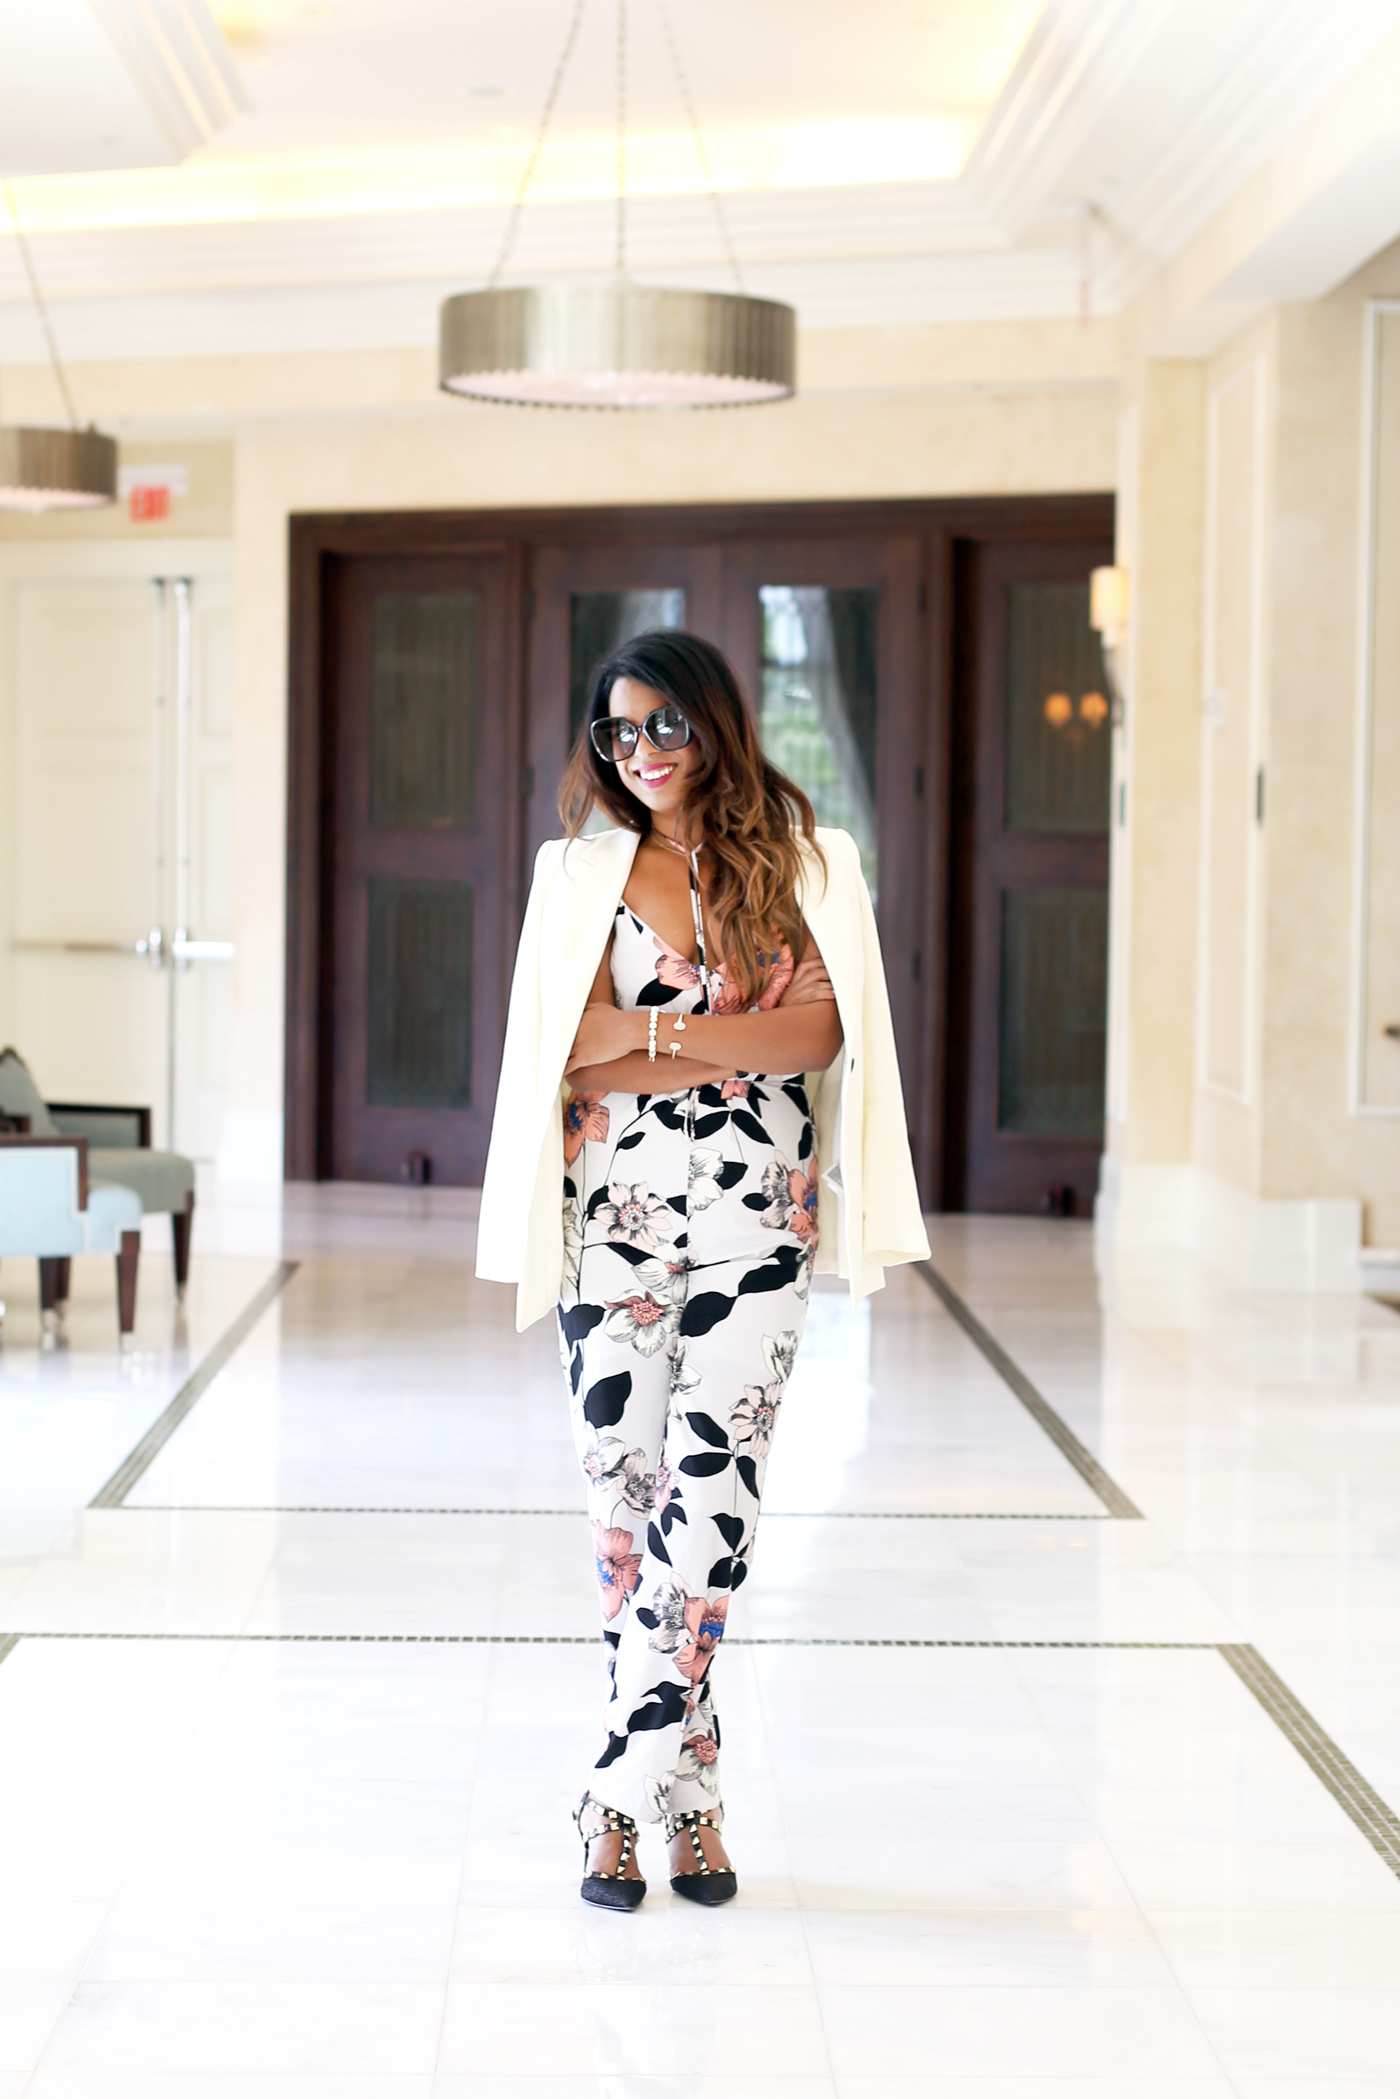 TAOS-floral-Jumpsuit-OOTD-leith-nordstrom